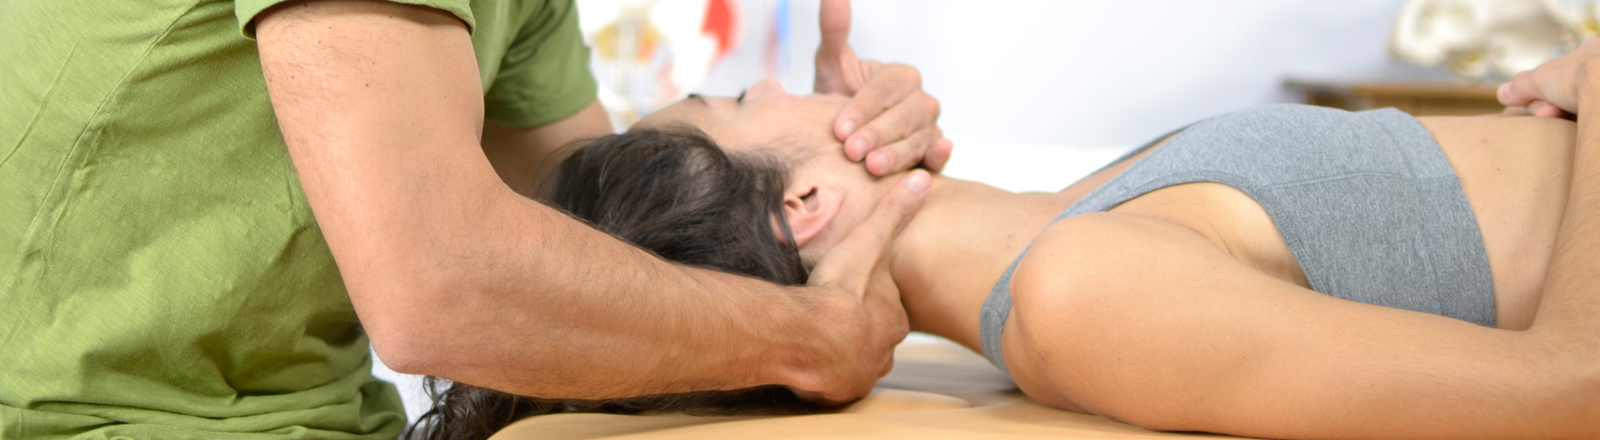 terapia manual fisioterapia